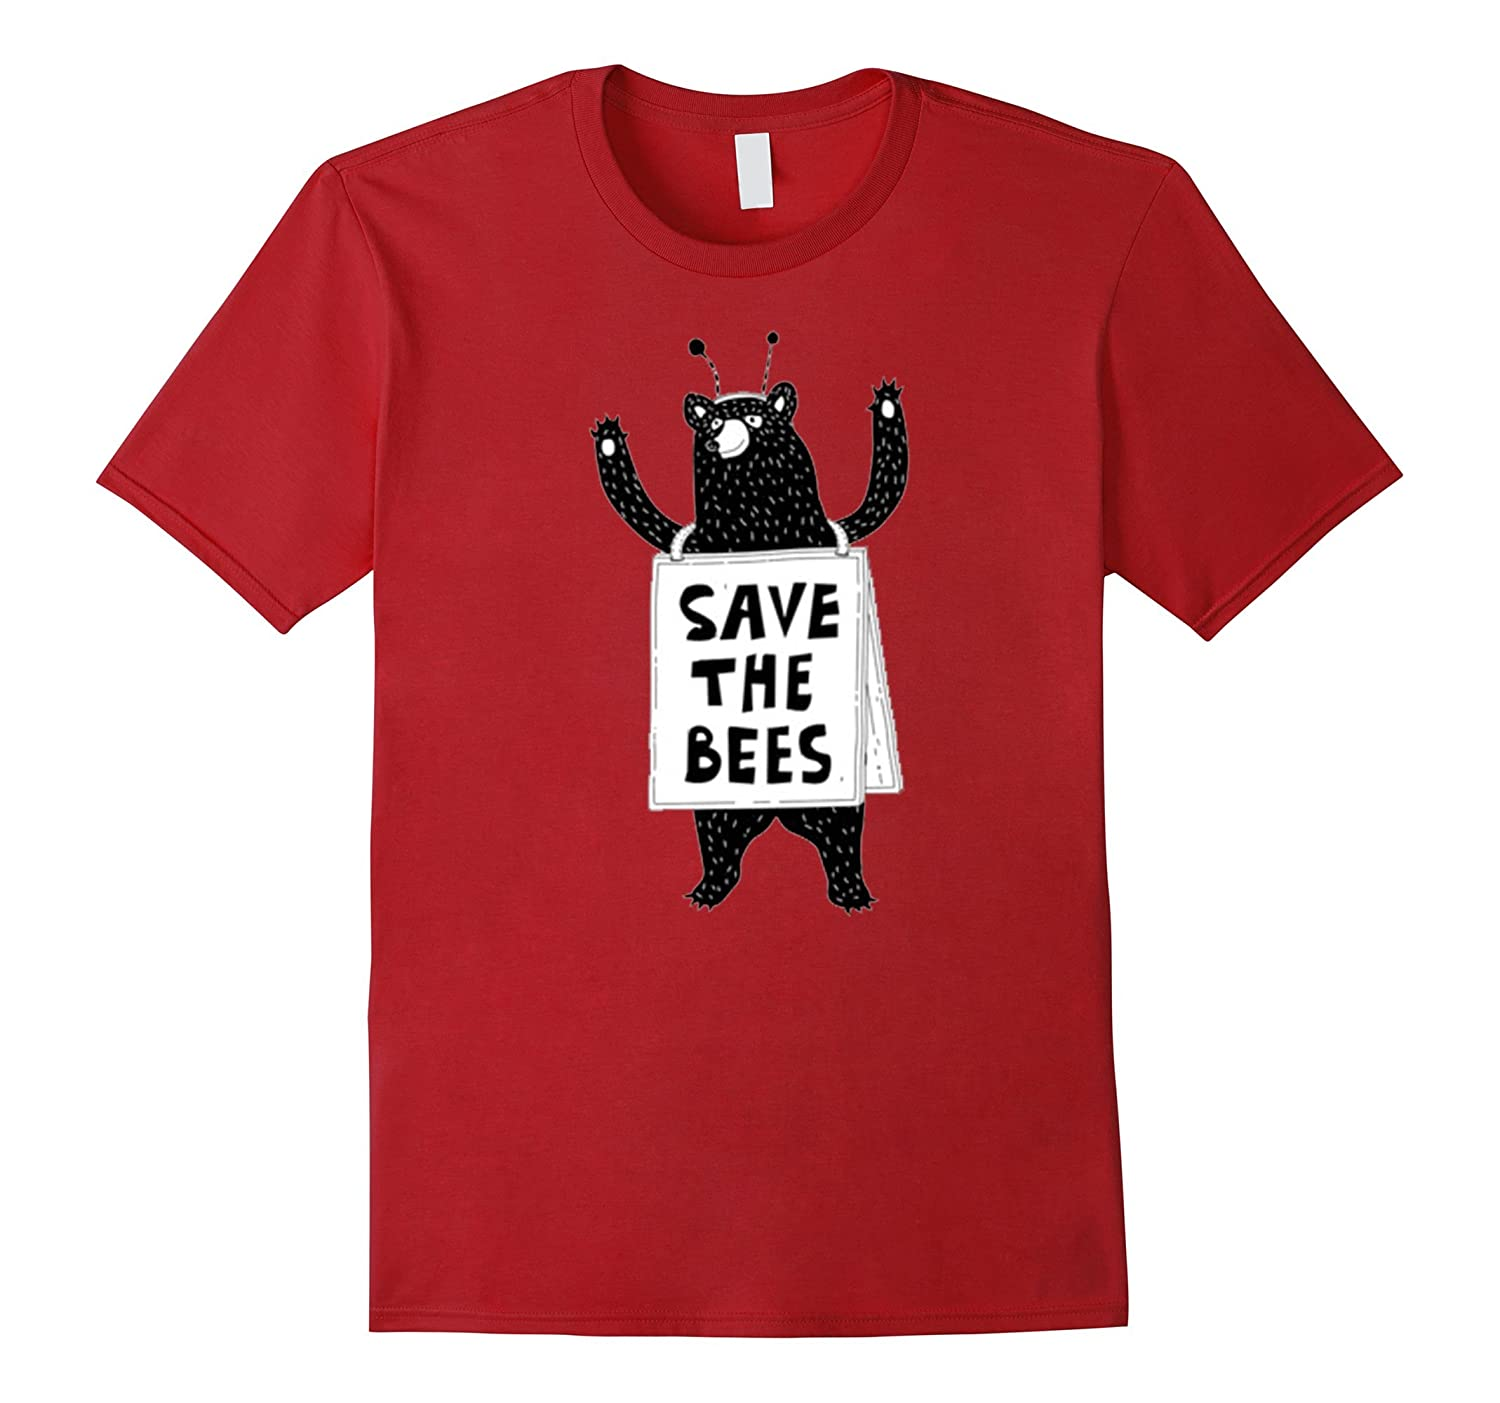 Save The Bees Honeybees Grizzly Bear Cartoon T Shirt T